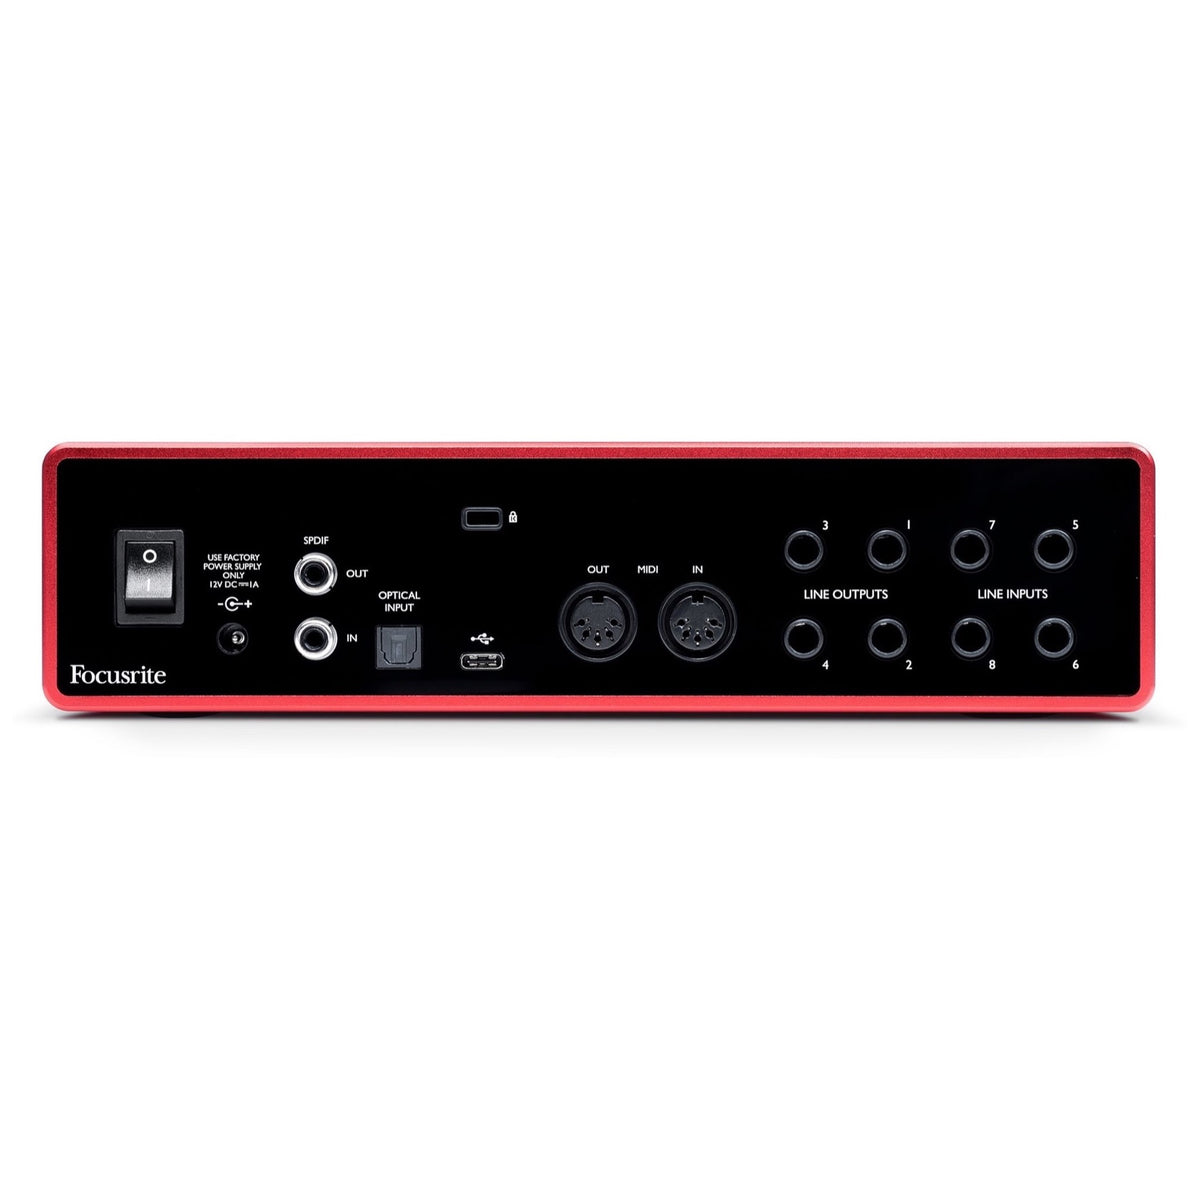 Focusrite Scarlett 18i8 3rd Gen USB Audio Interface